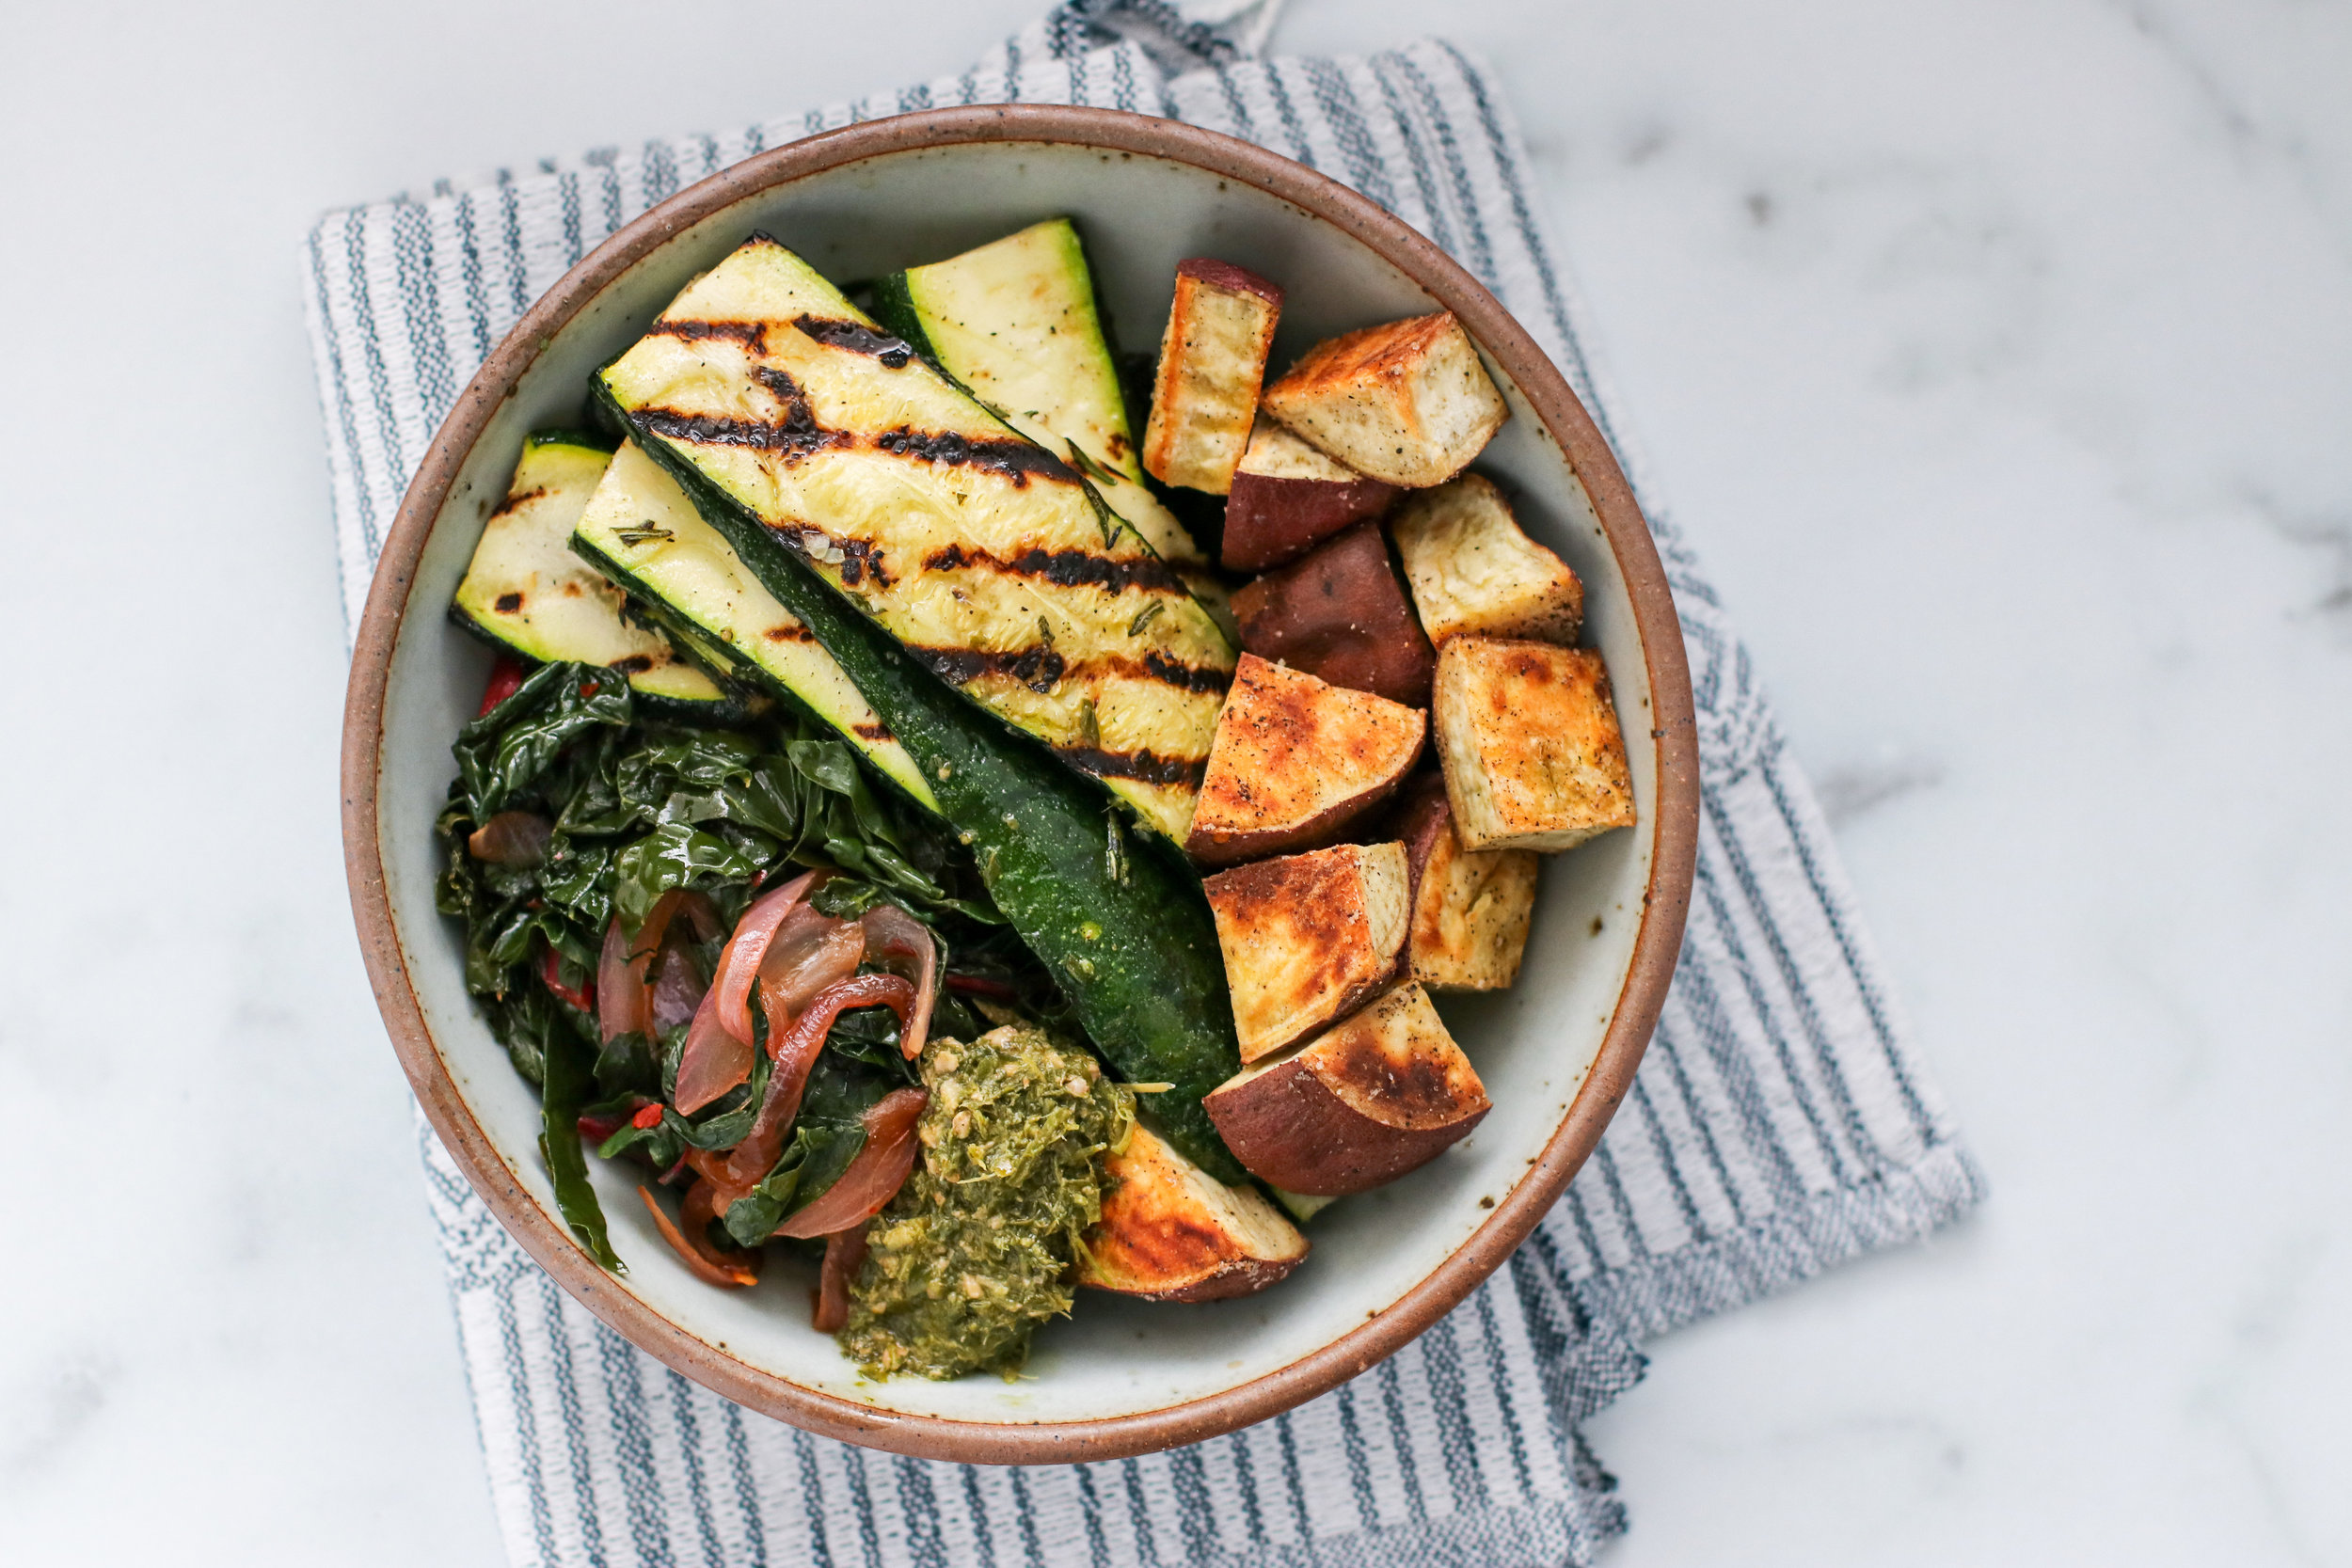 Sauteed Swiss Chard + Red Onions, Grilled Rosemary Zucchini, Roasted White Sweet Potatoes, Pest